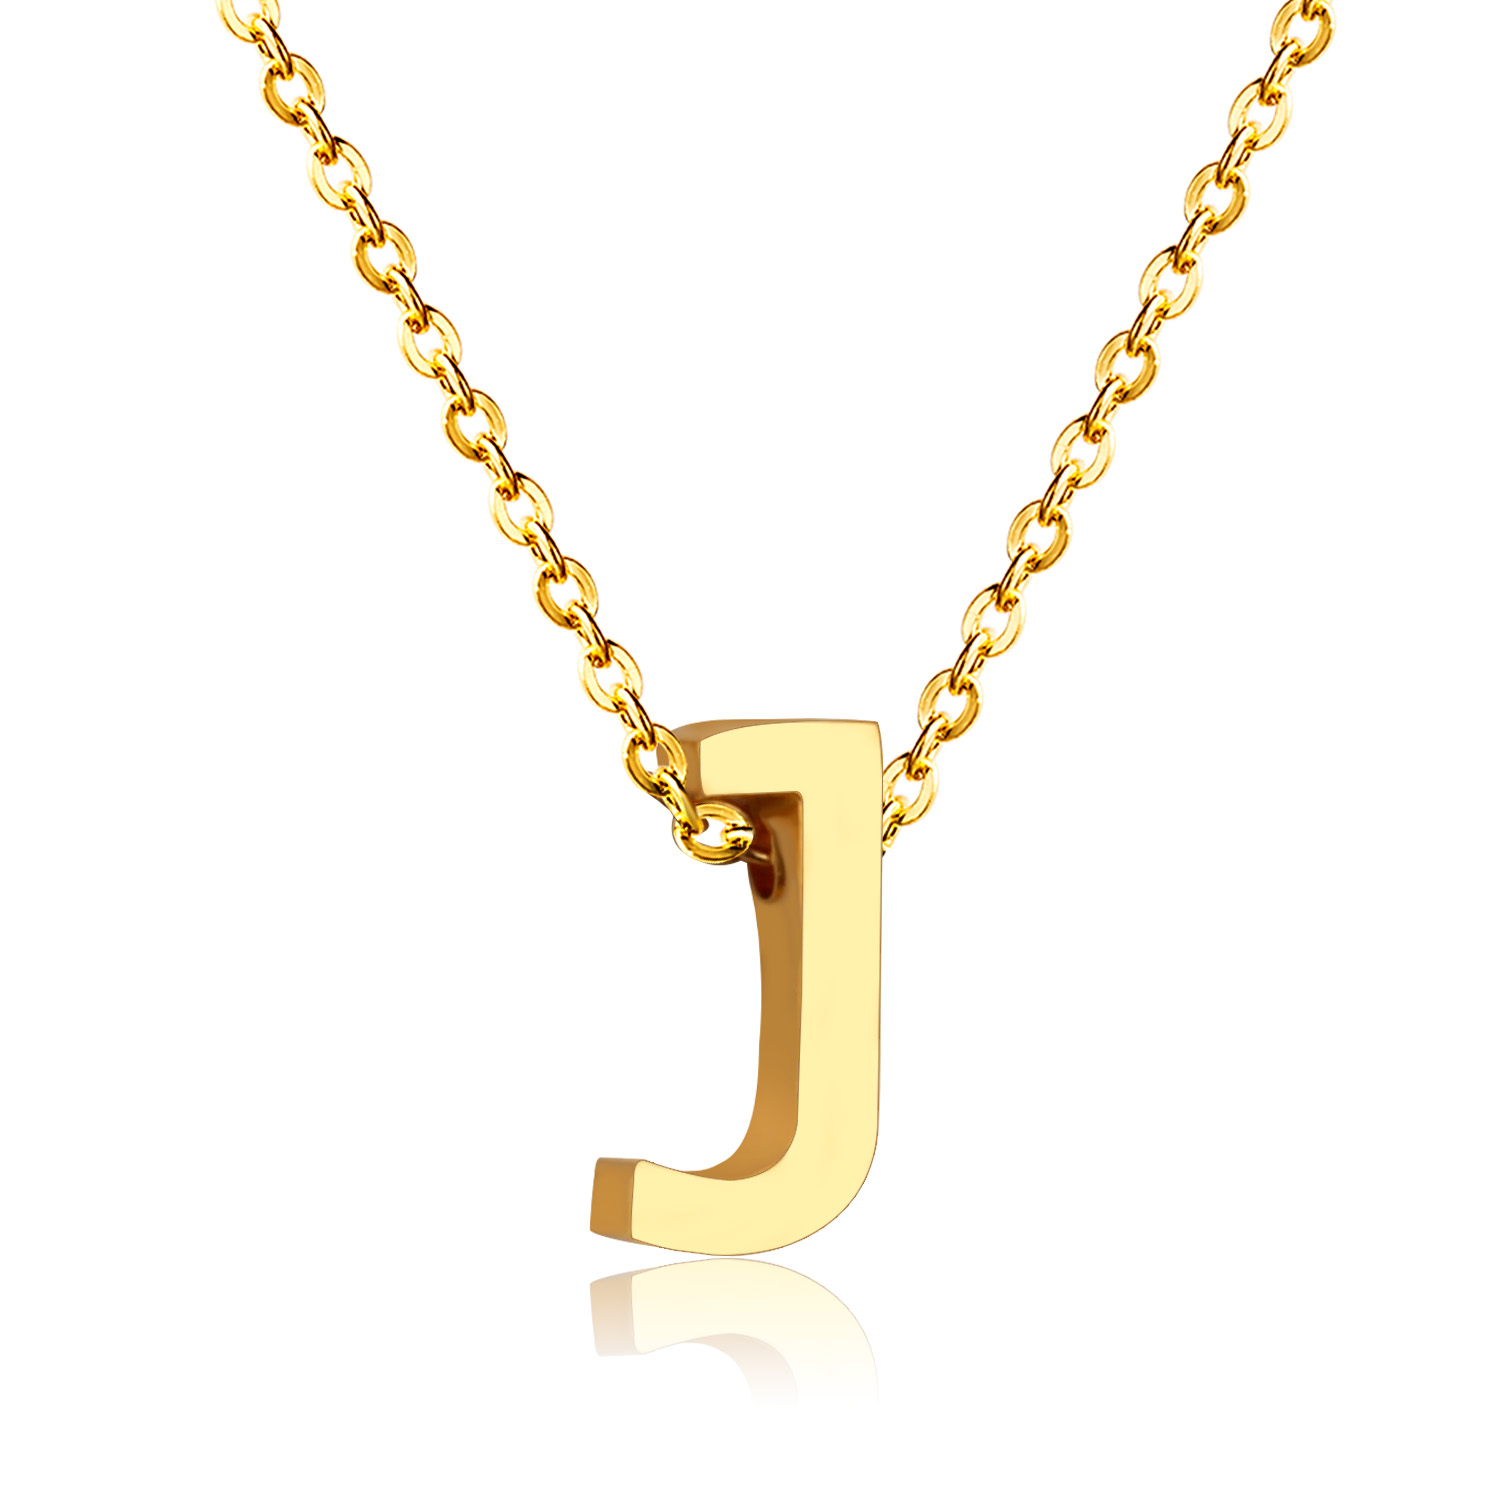 New letter j pendant necklace in pendant necklaces from jewelry new letter j pendant necklace in pendant necklaces from jewelry accessories on aliexpress alibaba group aloadofball Gallery